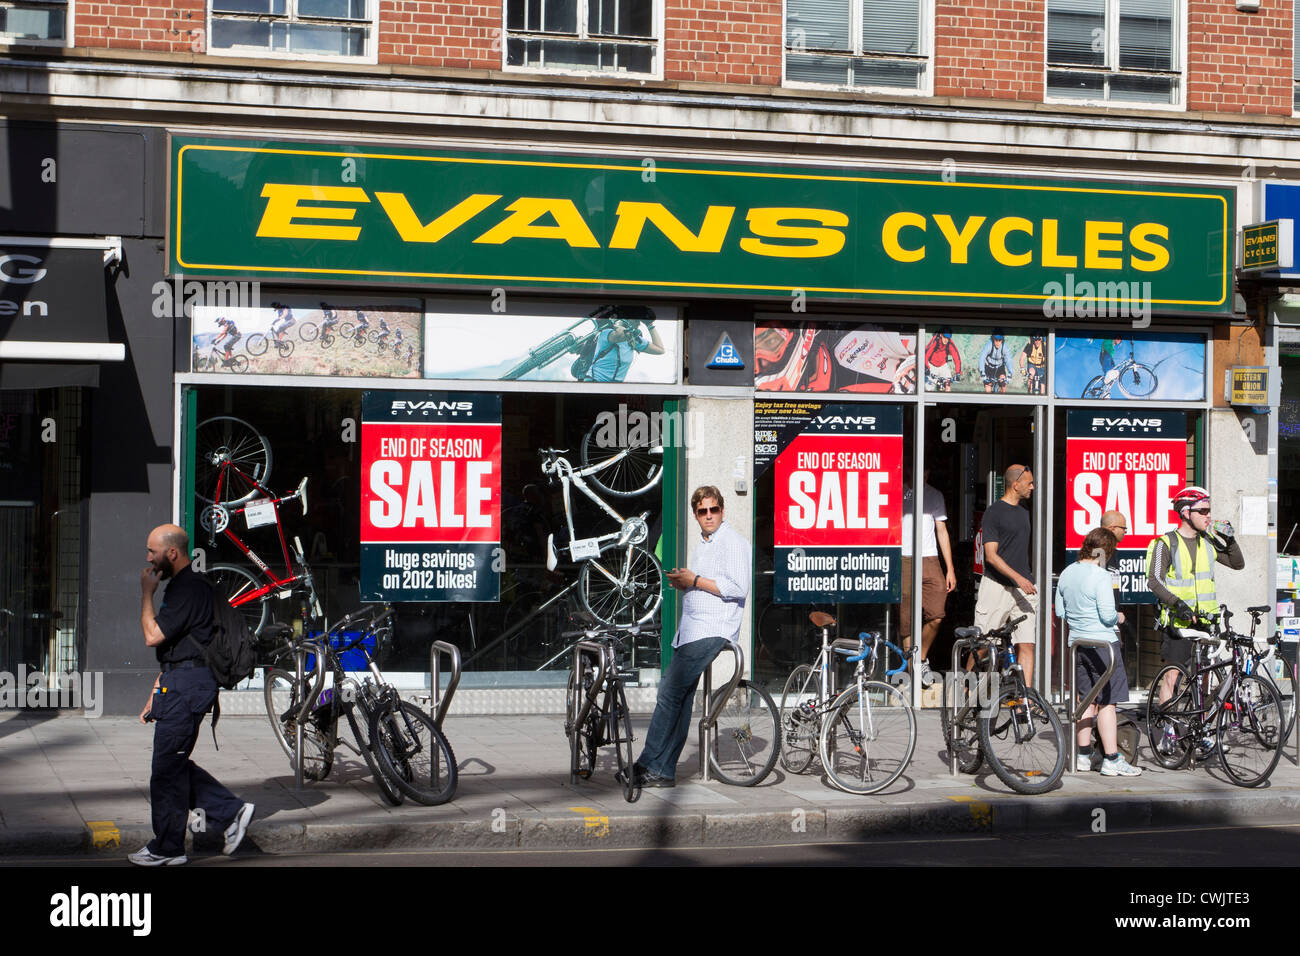 Evans cycles, bicycle shop, London, England, UK - Stock Image